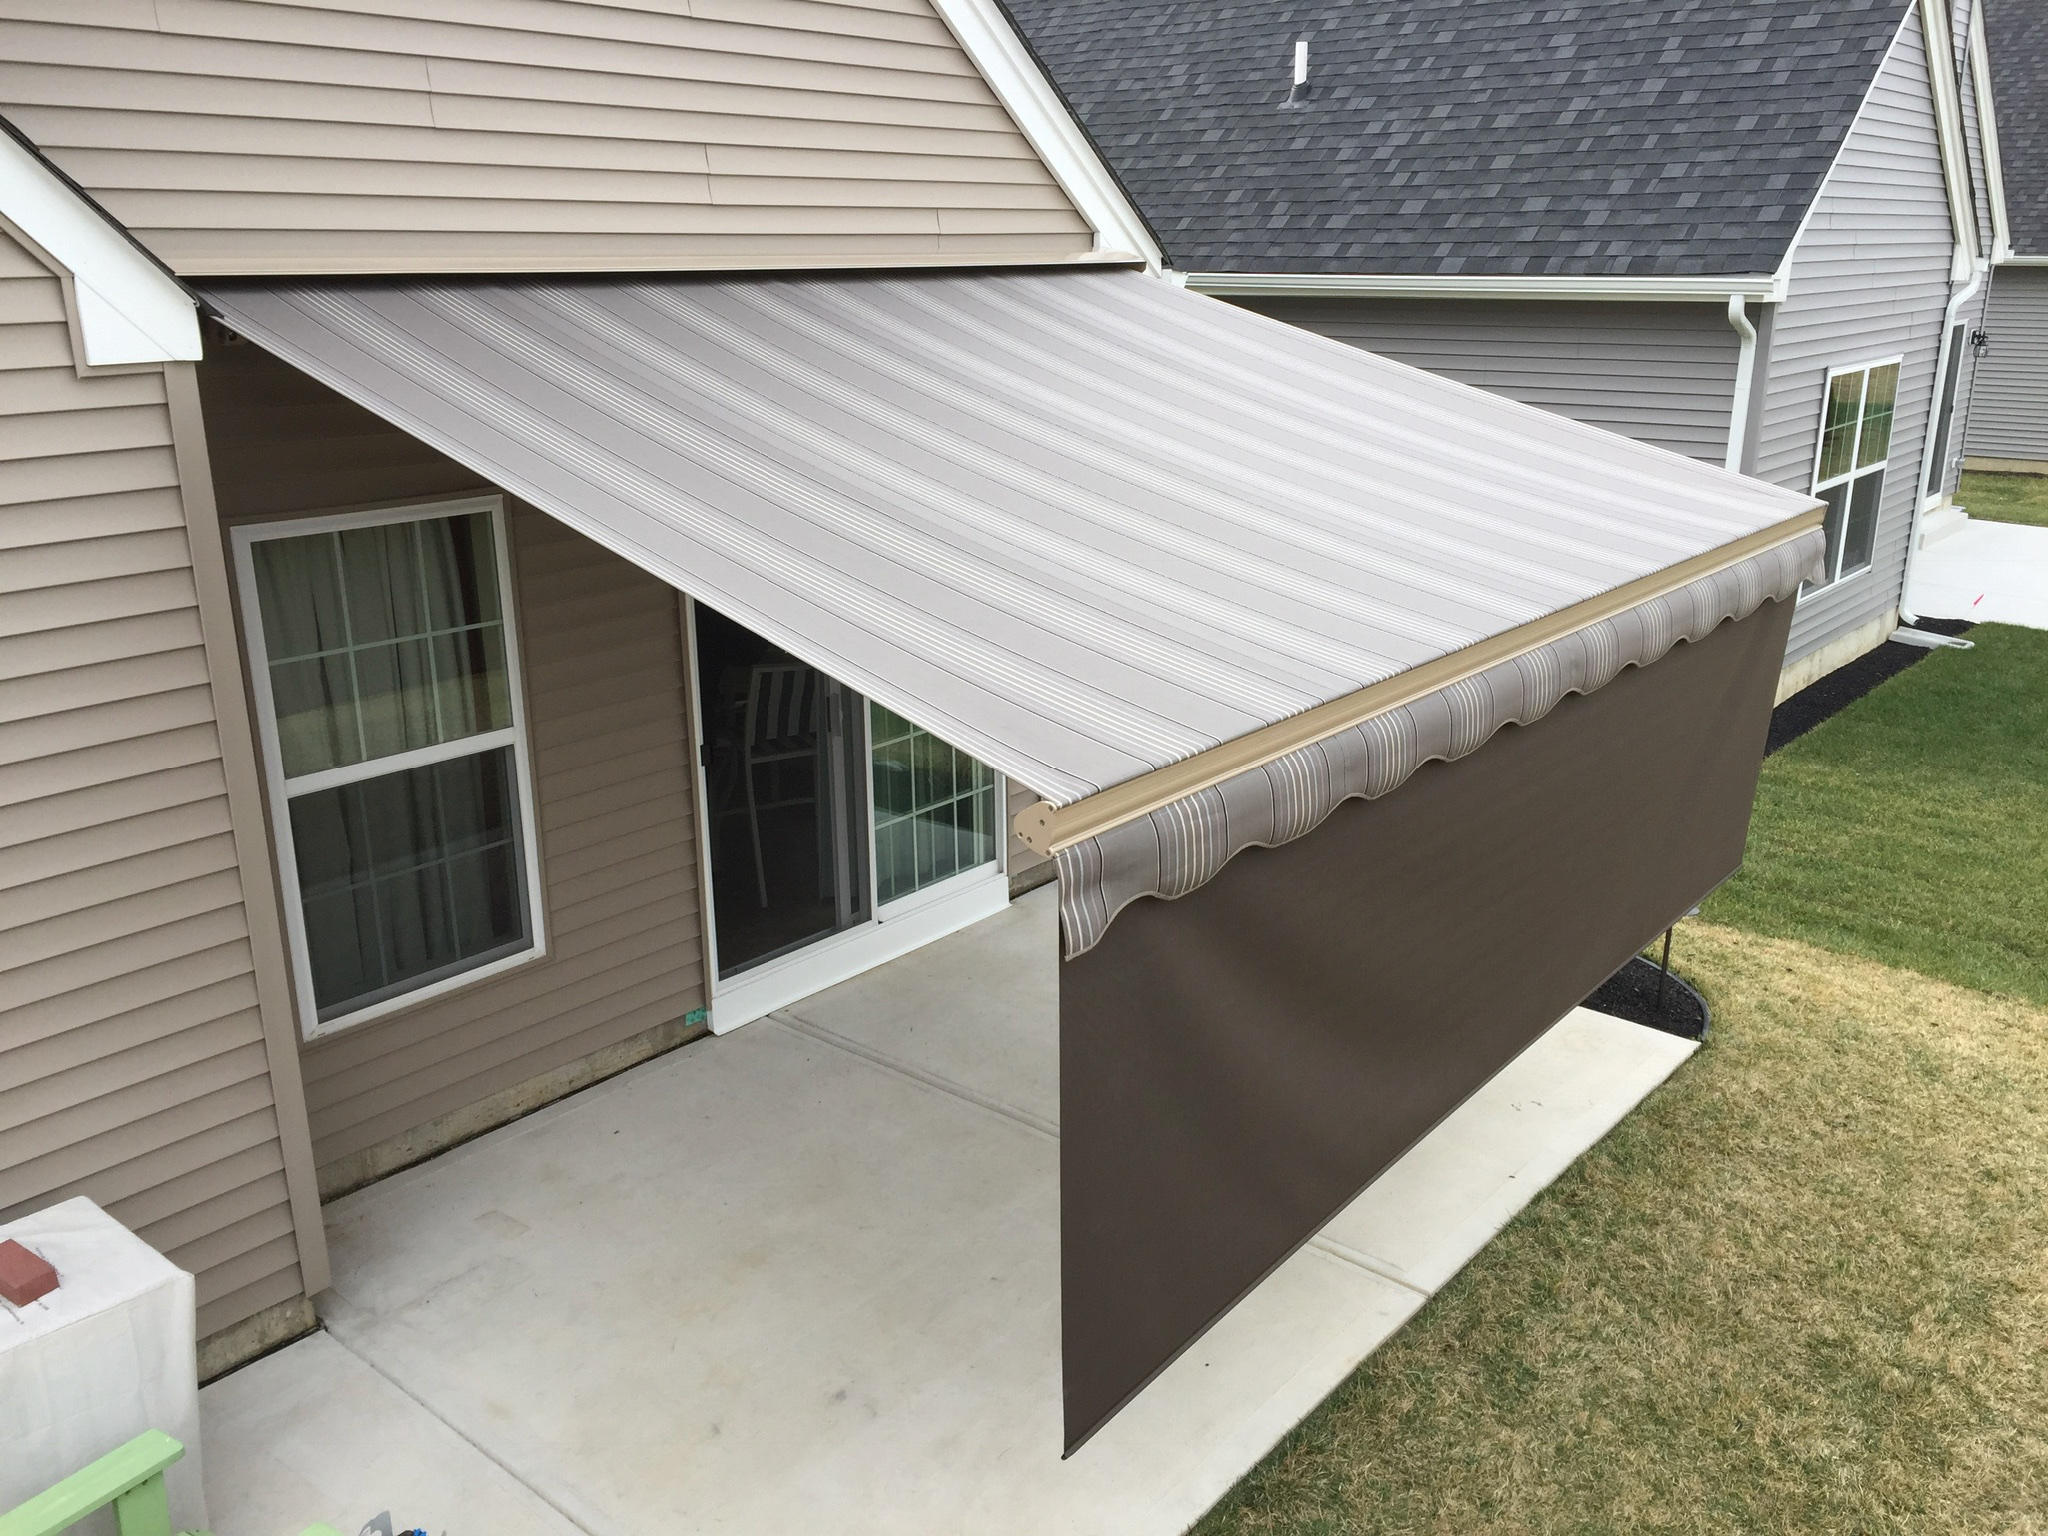 This aesthetic will add value and curb appeal to your home, should you ever  decide to sell. The investment you make with a Motorized Retractable Awning  will